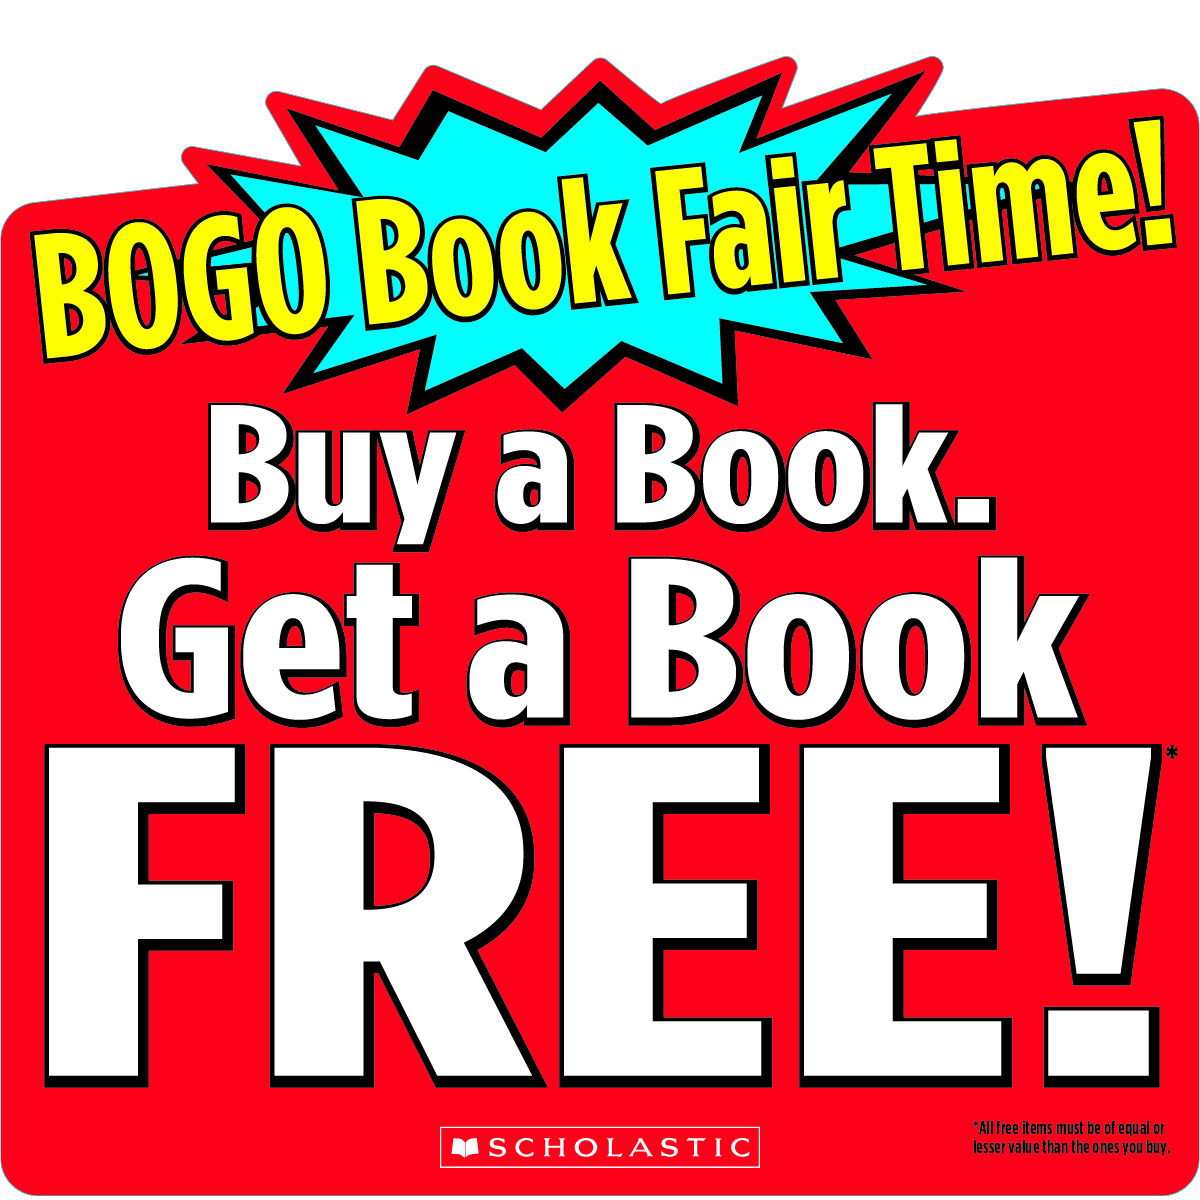 300263_bogo_social_media_book_fair_time_jpg.jpg